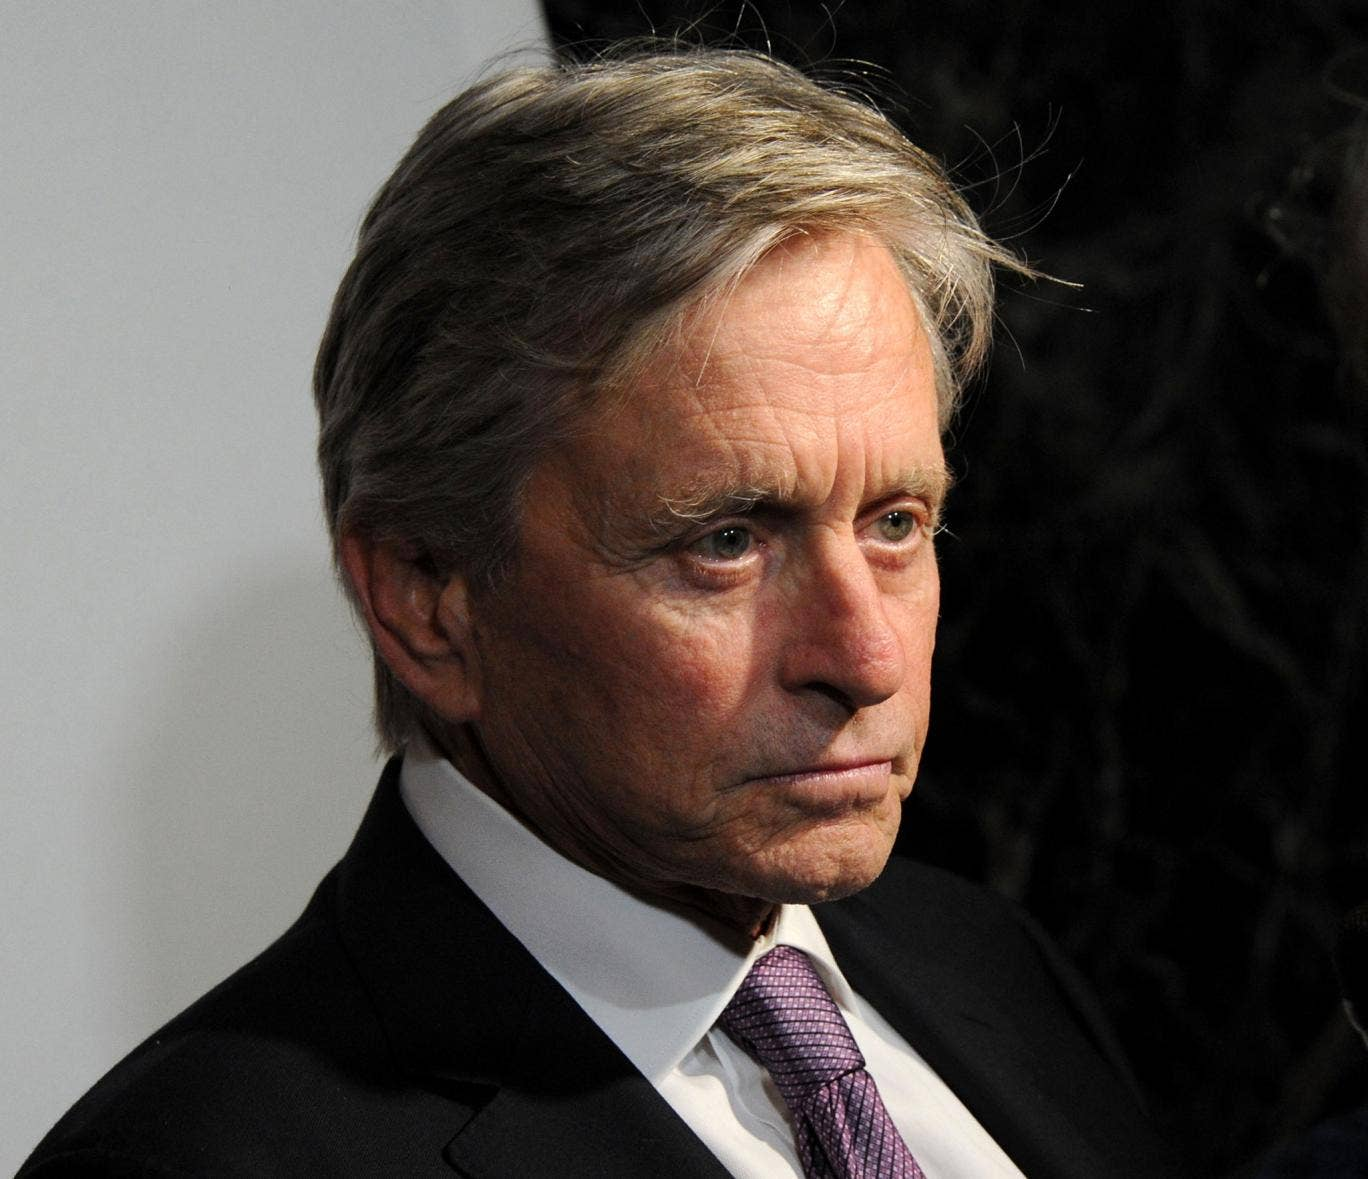 Michael Douglas has denied saying his cancer was caused by oral sex